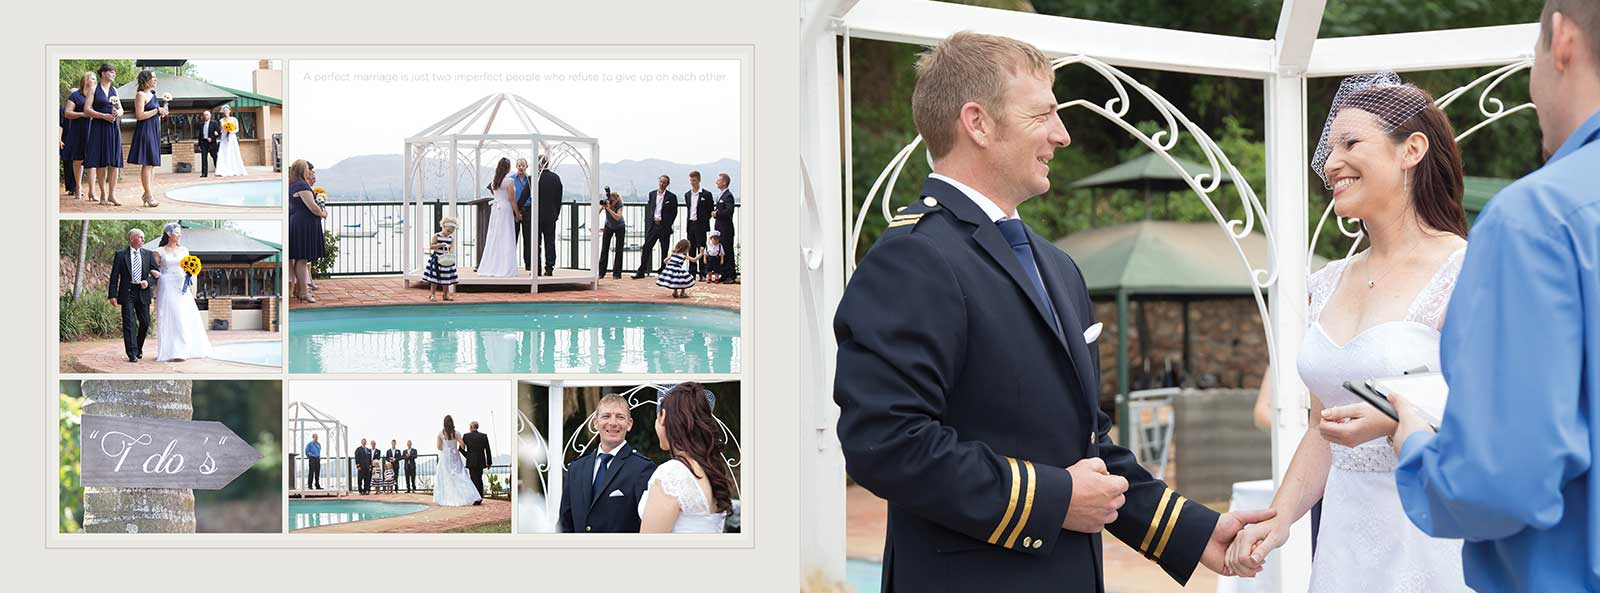 wedding ceremony at Transvaal Yacht Club